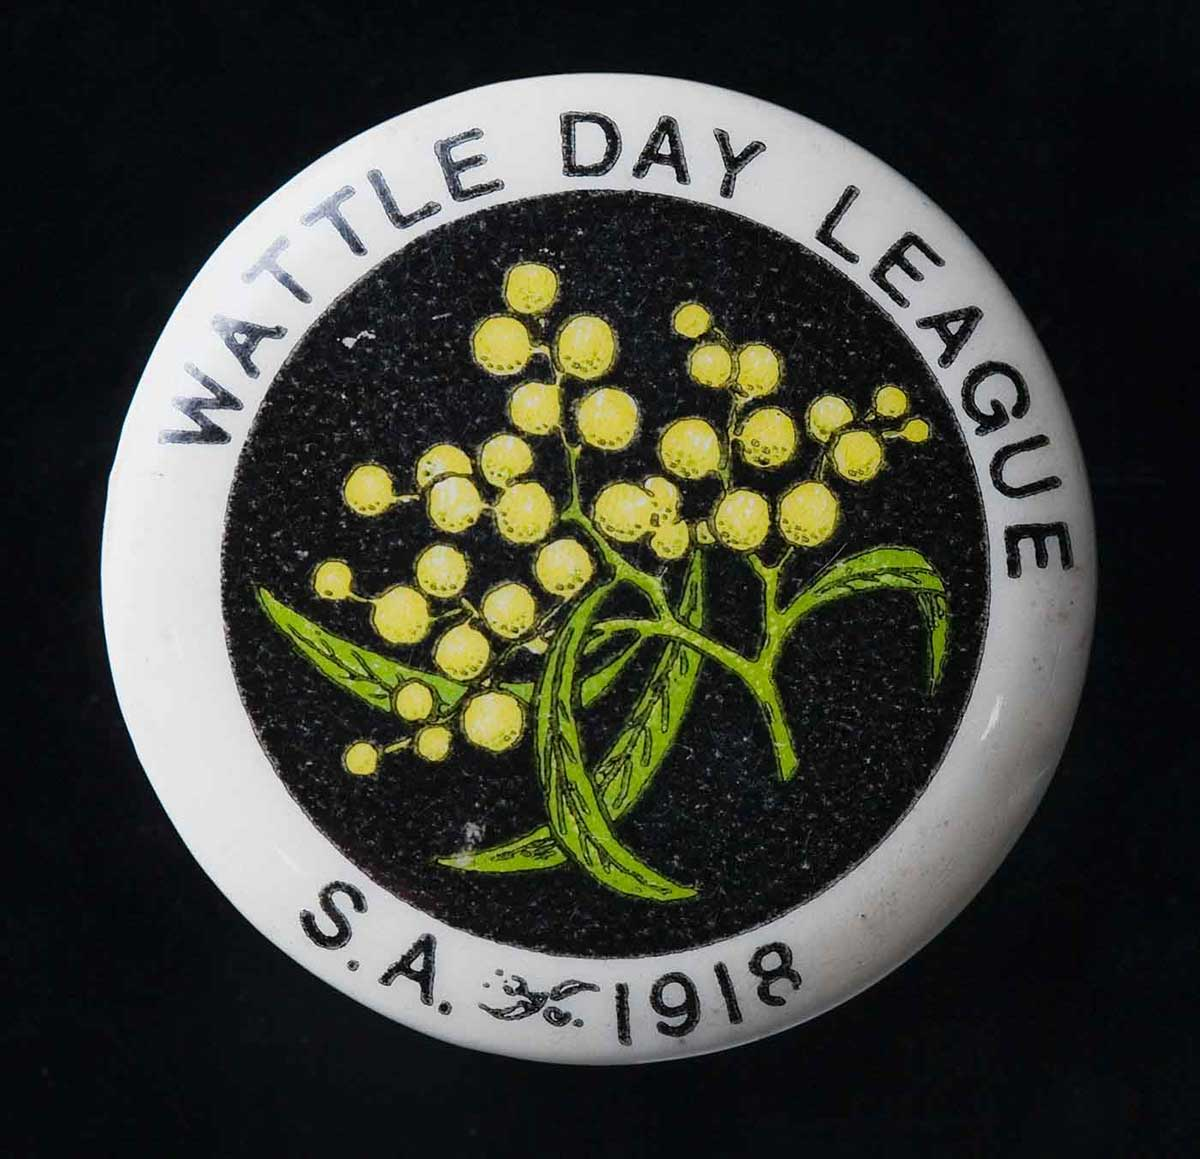 Circular badge with an image of wattle in the centre. The words 'WATTLE DAY LEAGUE. S.A. 1918' appear around the edge. - click to view larger image